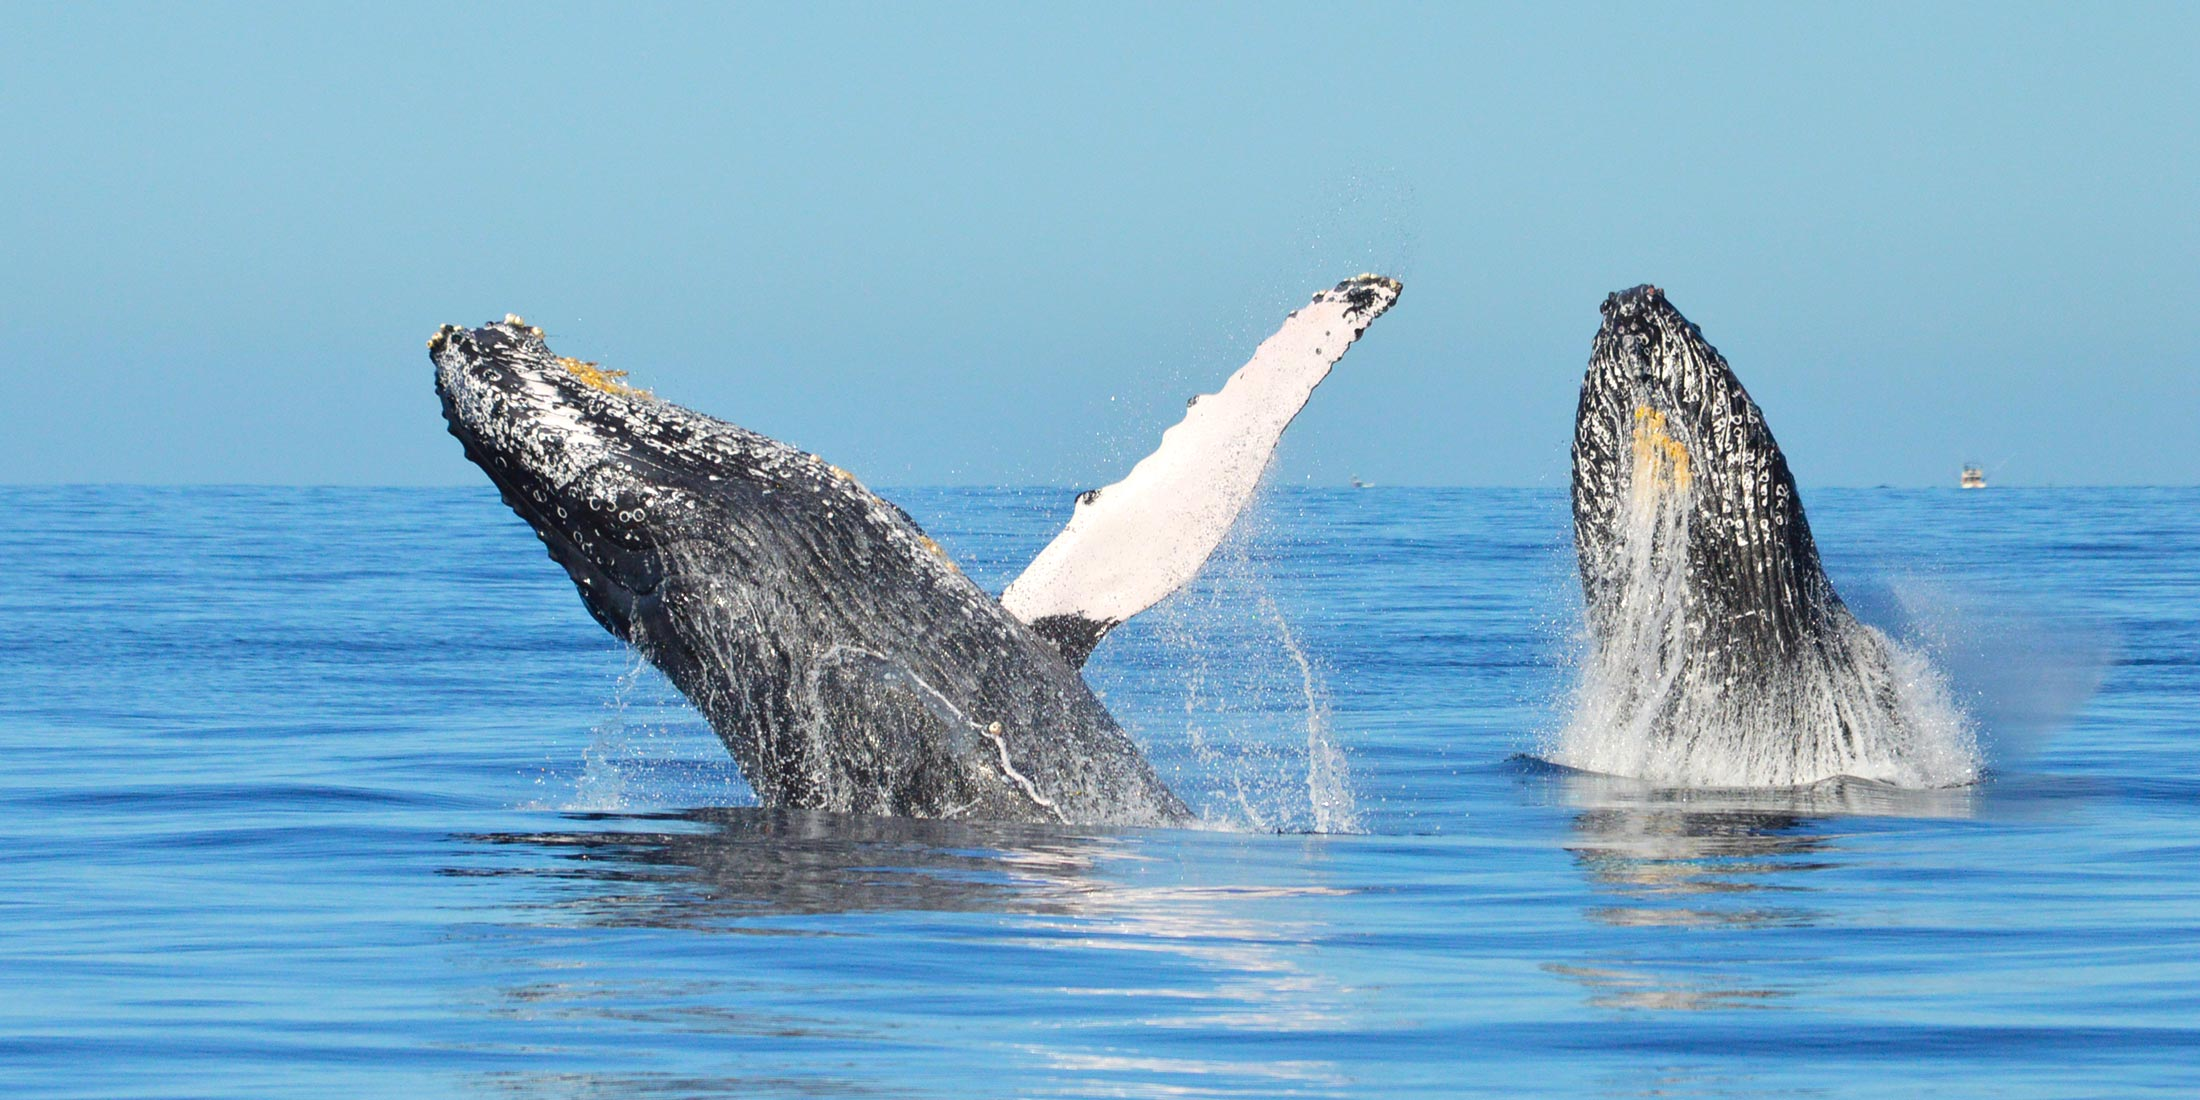 whale watching cabo best time - whale watch cabo tours